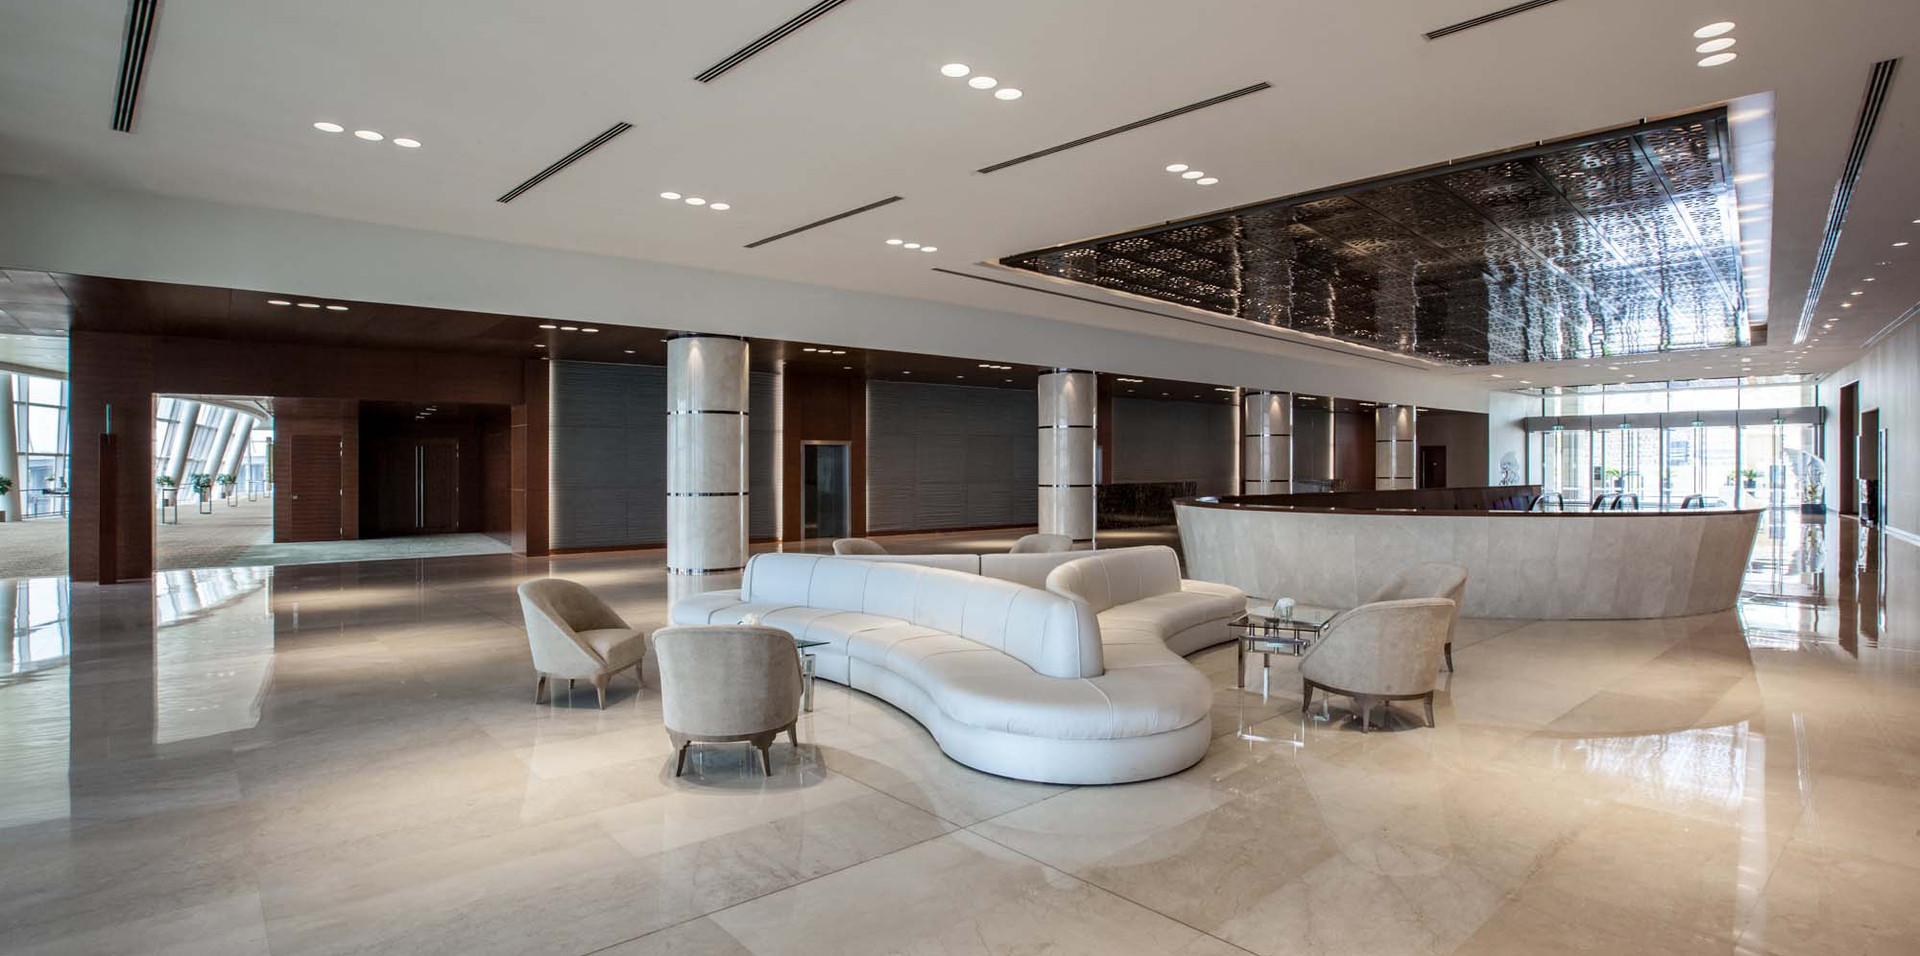 Lobby Area | The Event Centre